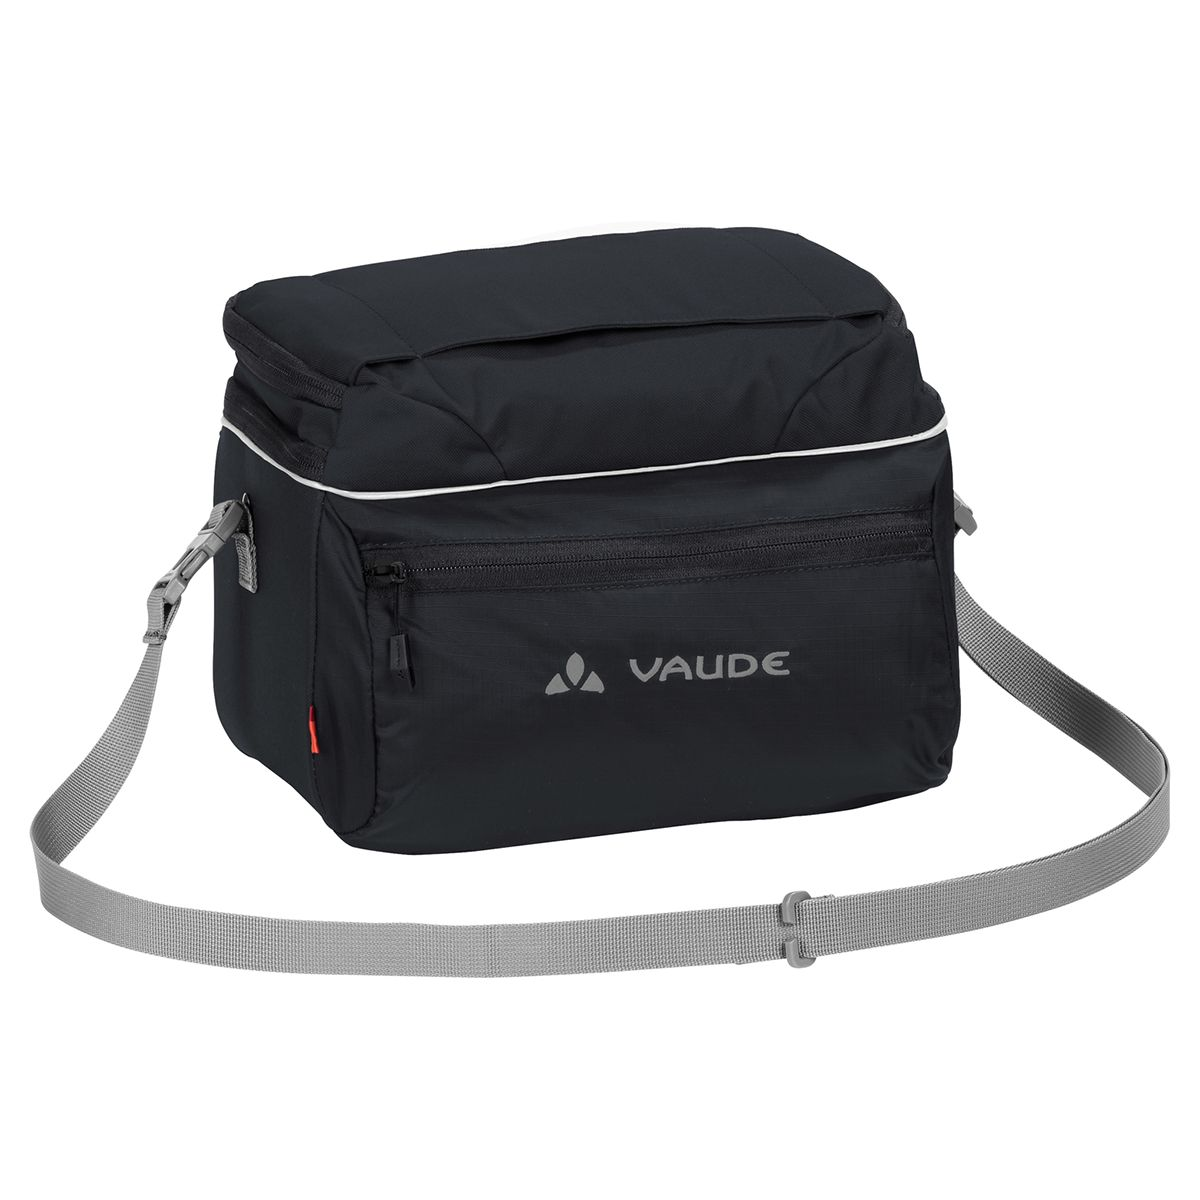 ROAD II handlebar bag